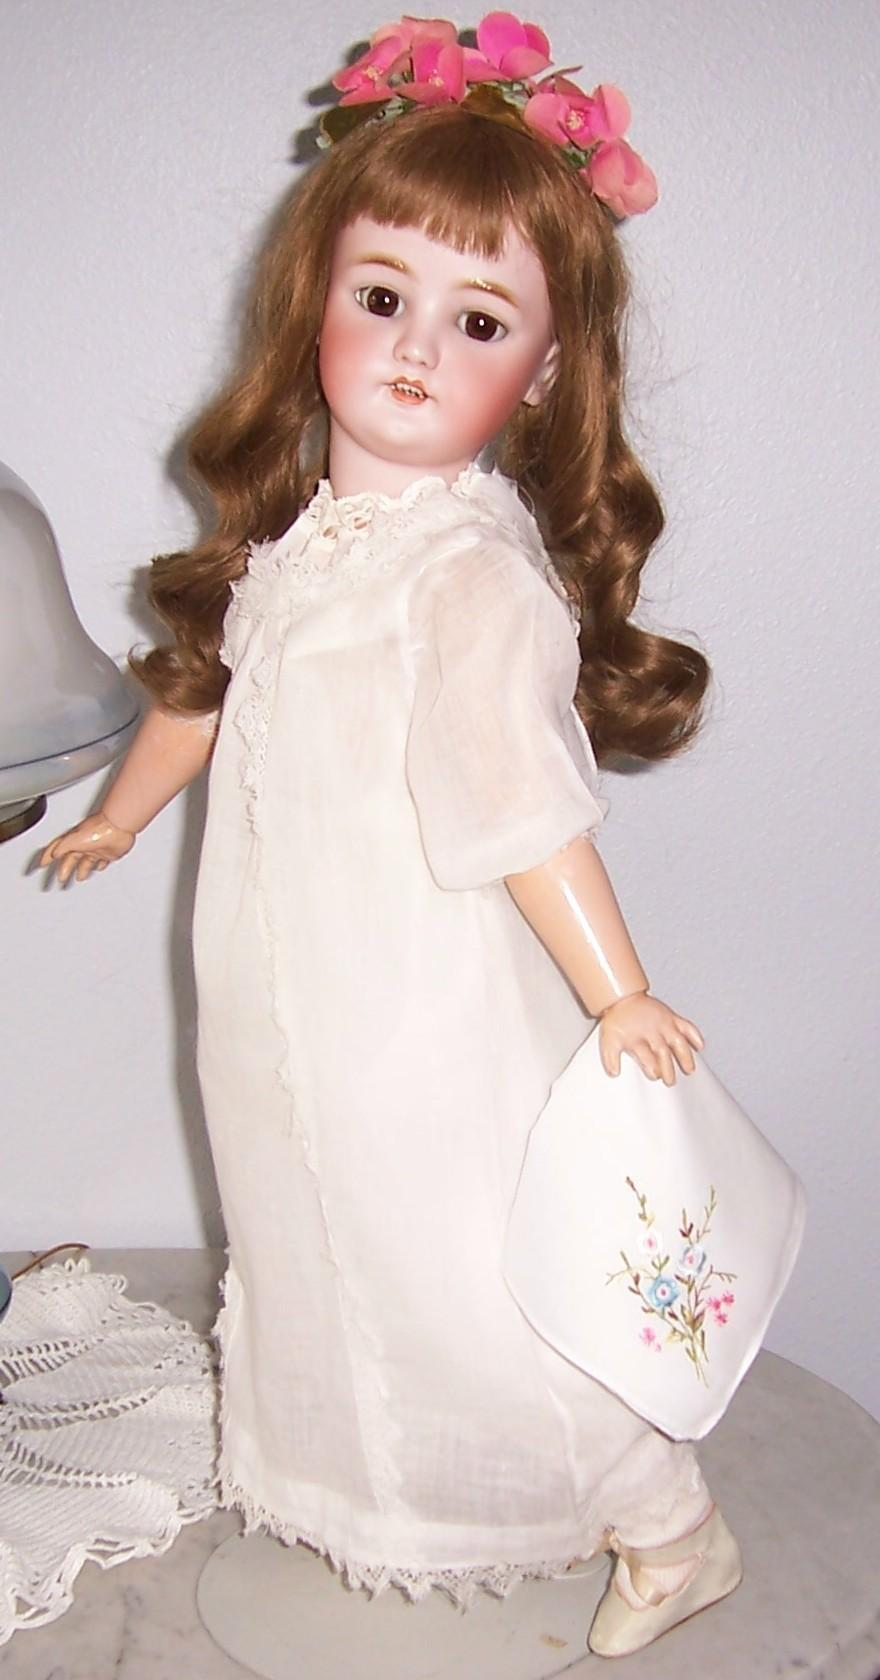 "26"" Antique German Bisque Head Doll. Marked CM Bergmann Simon & Halbig. Beautifully dressed. Display Ready"